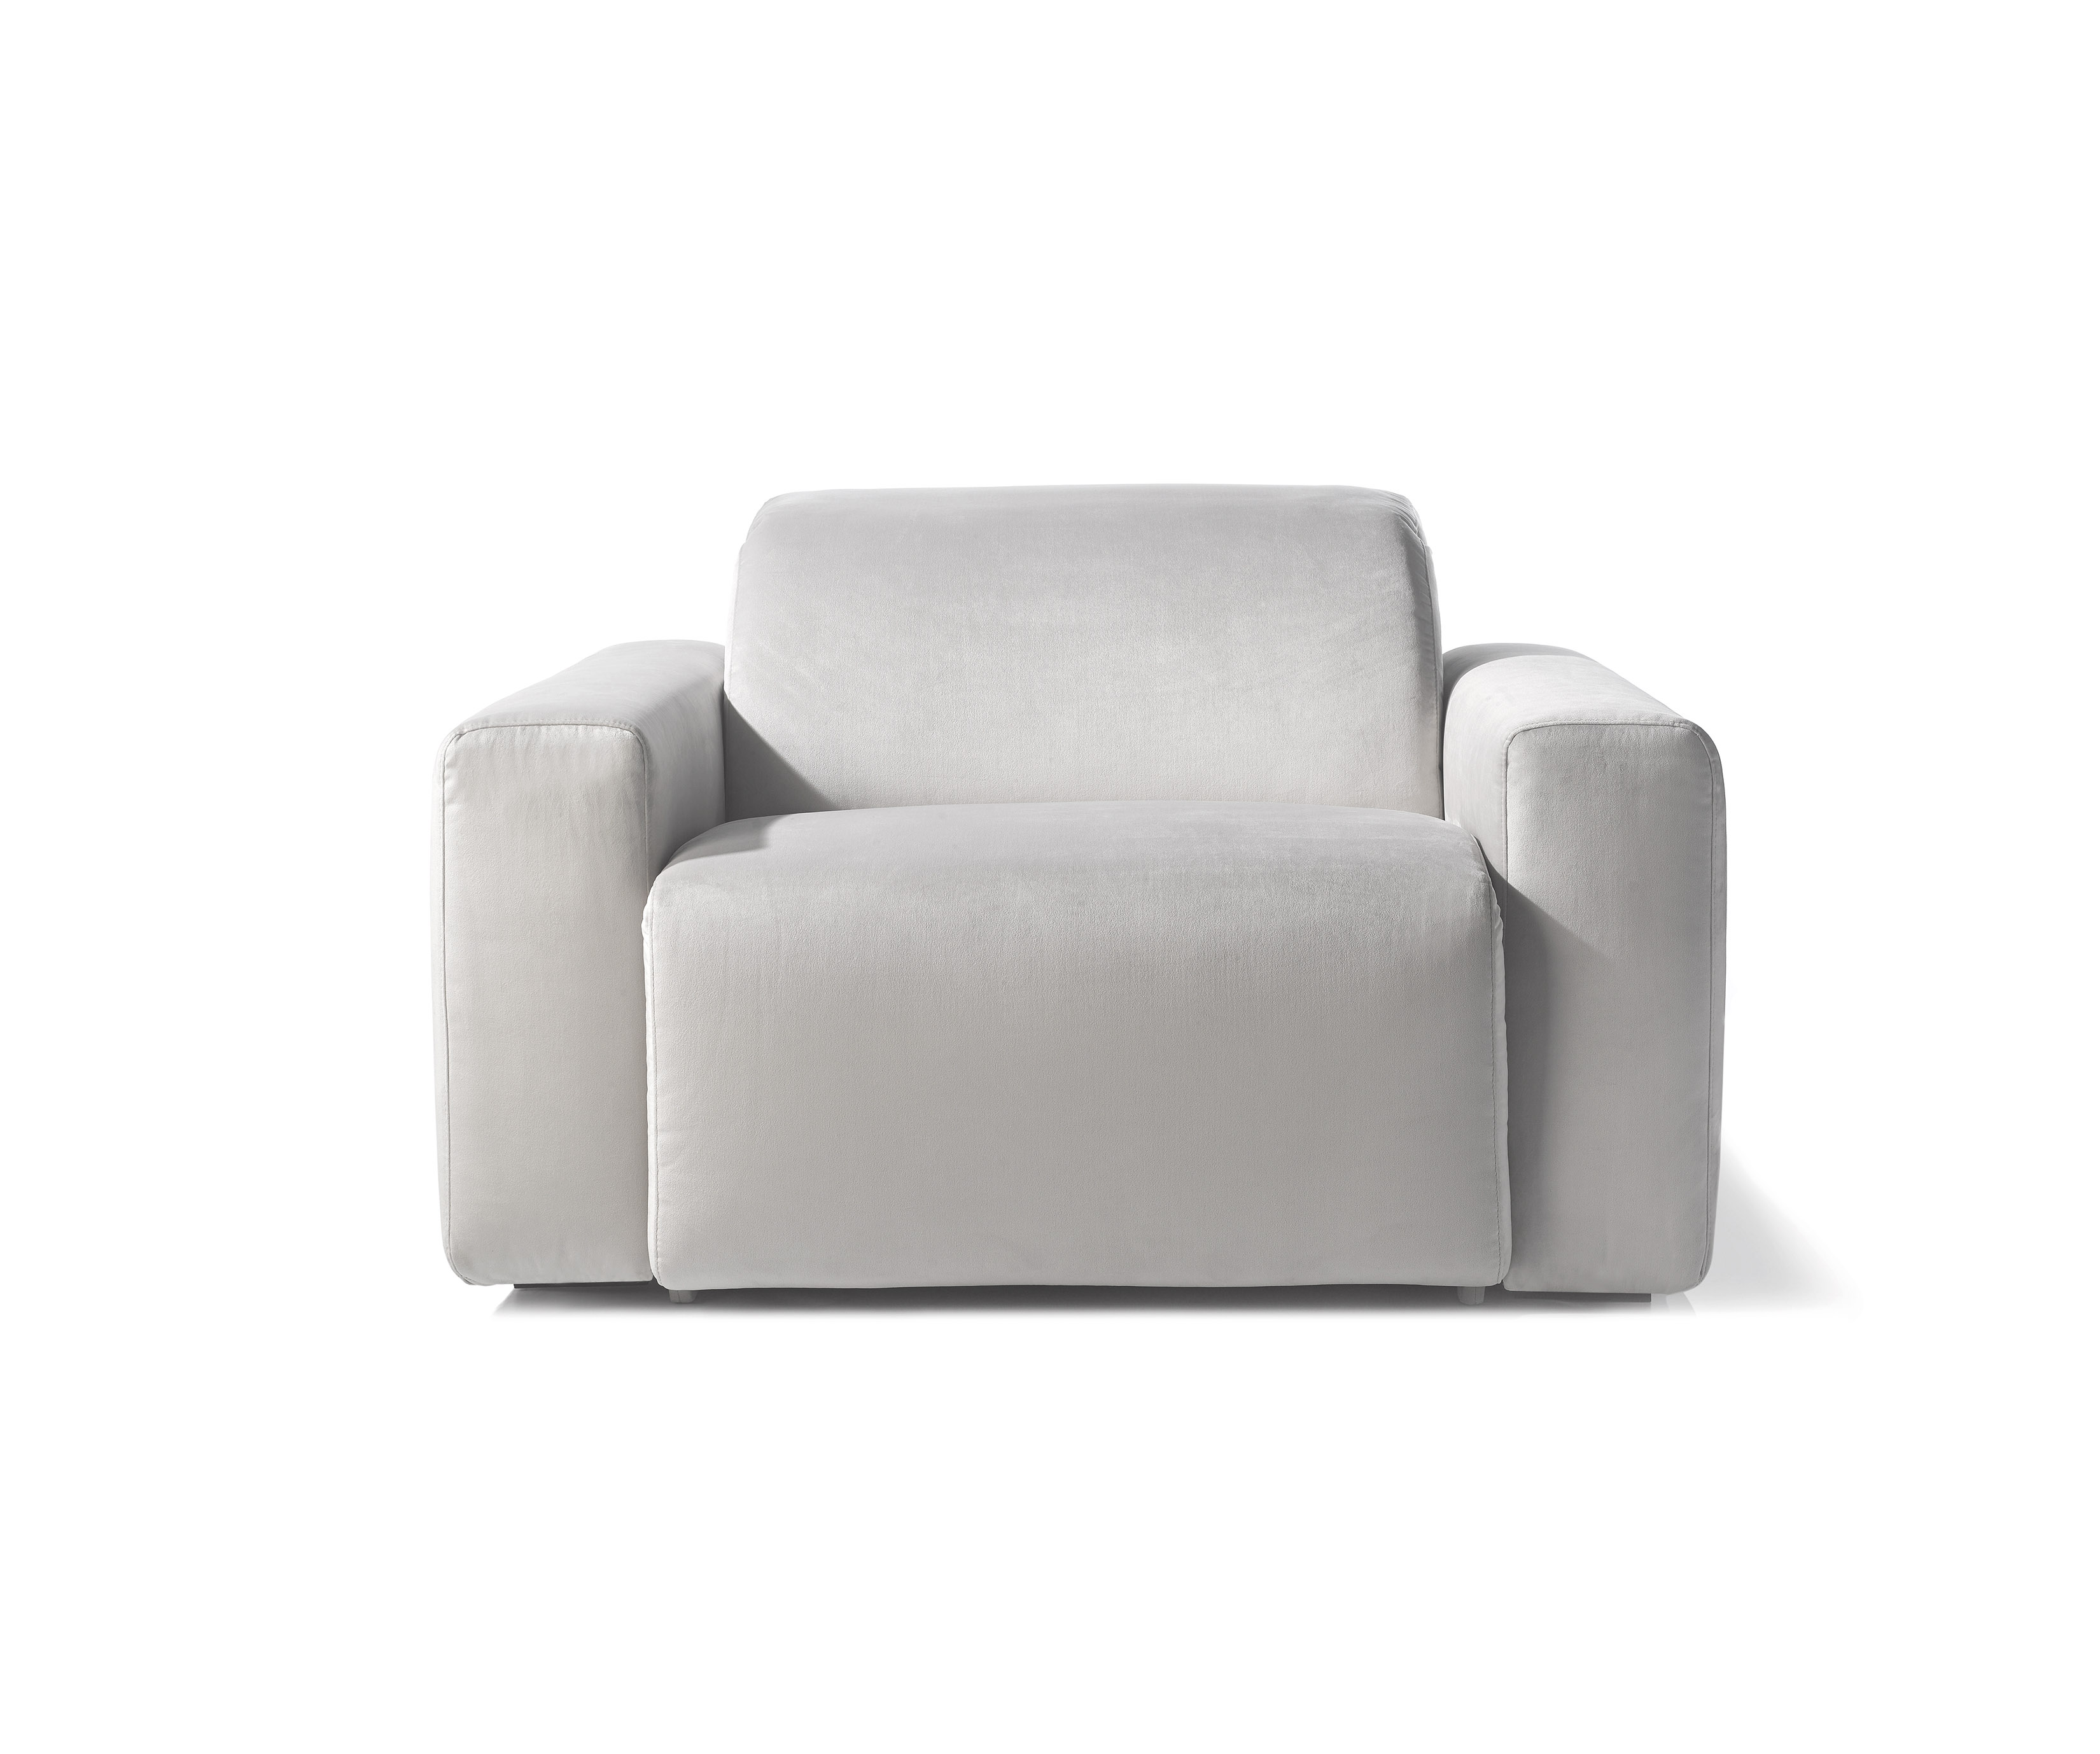 home cinema room seating, home cinema seating, home cinema room seats,  recliner chairs, cinema chairs, luxury recliner